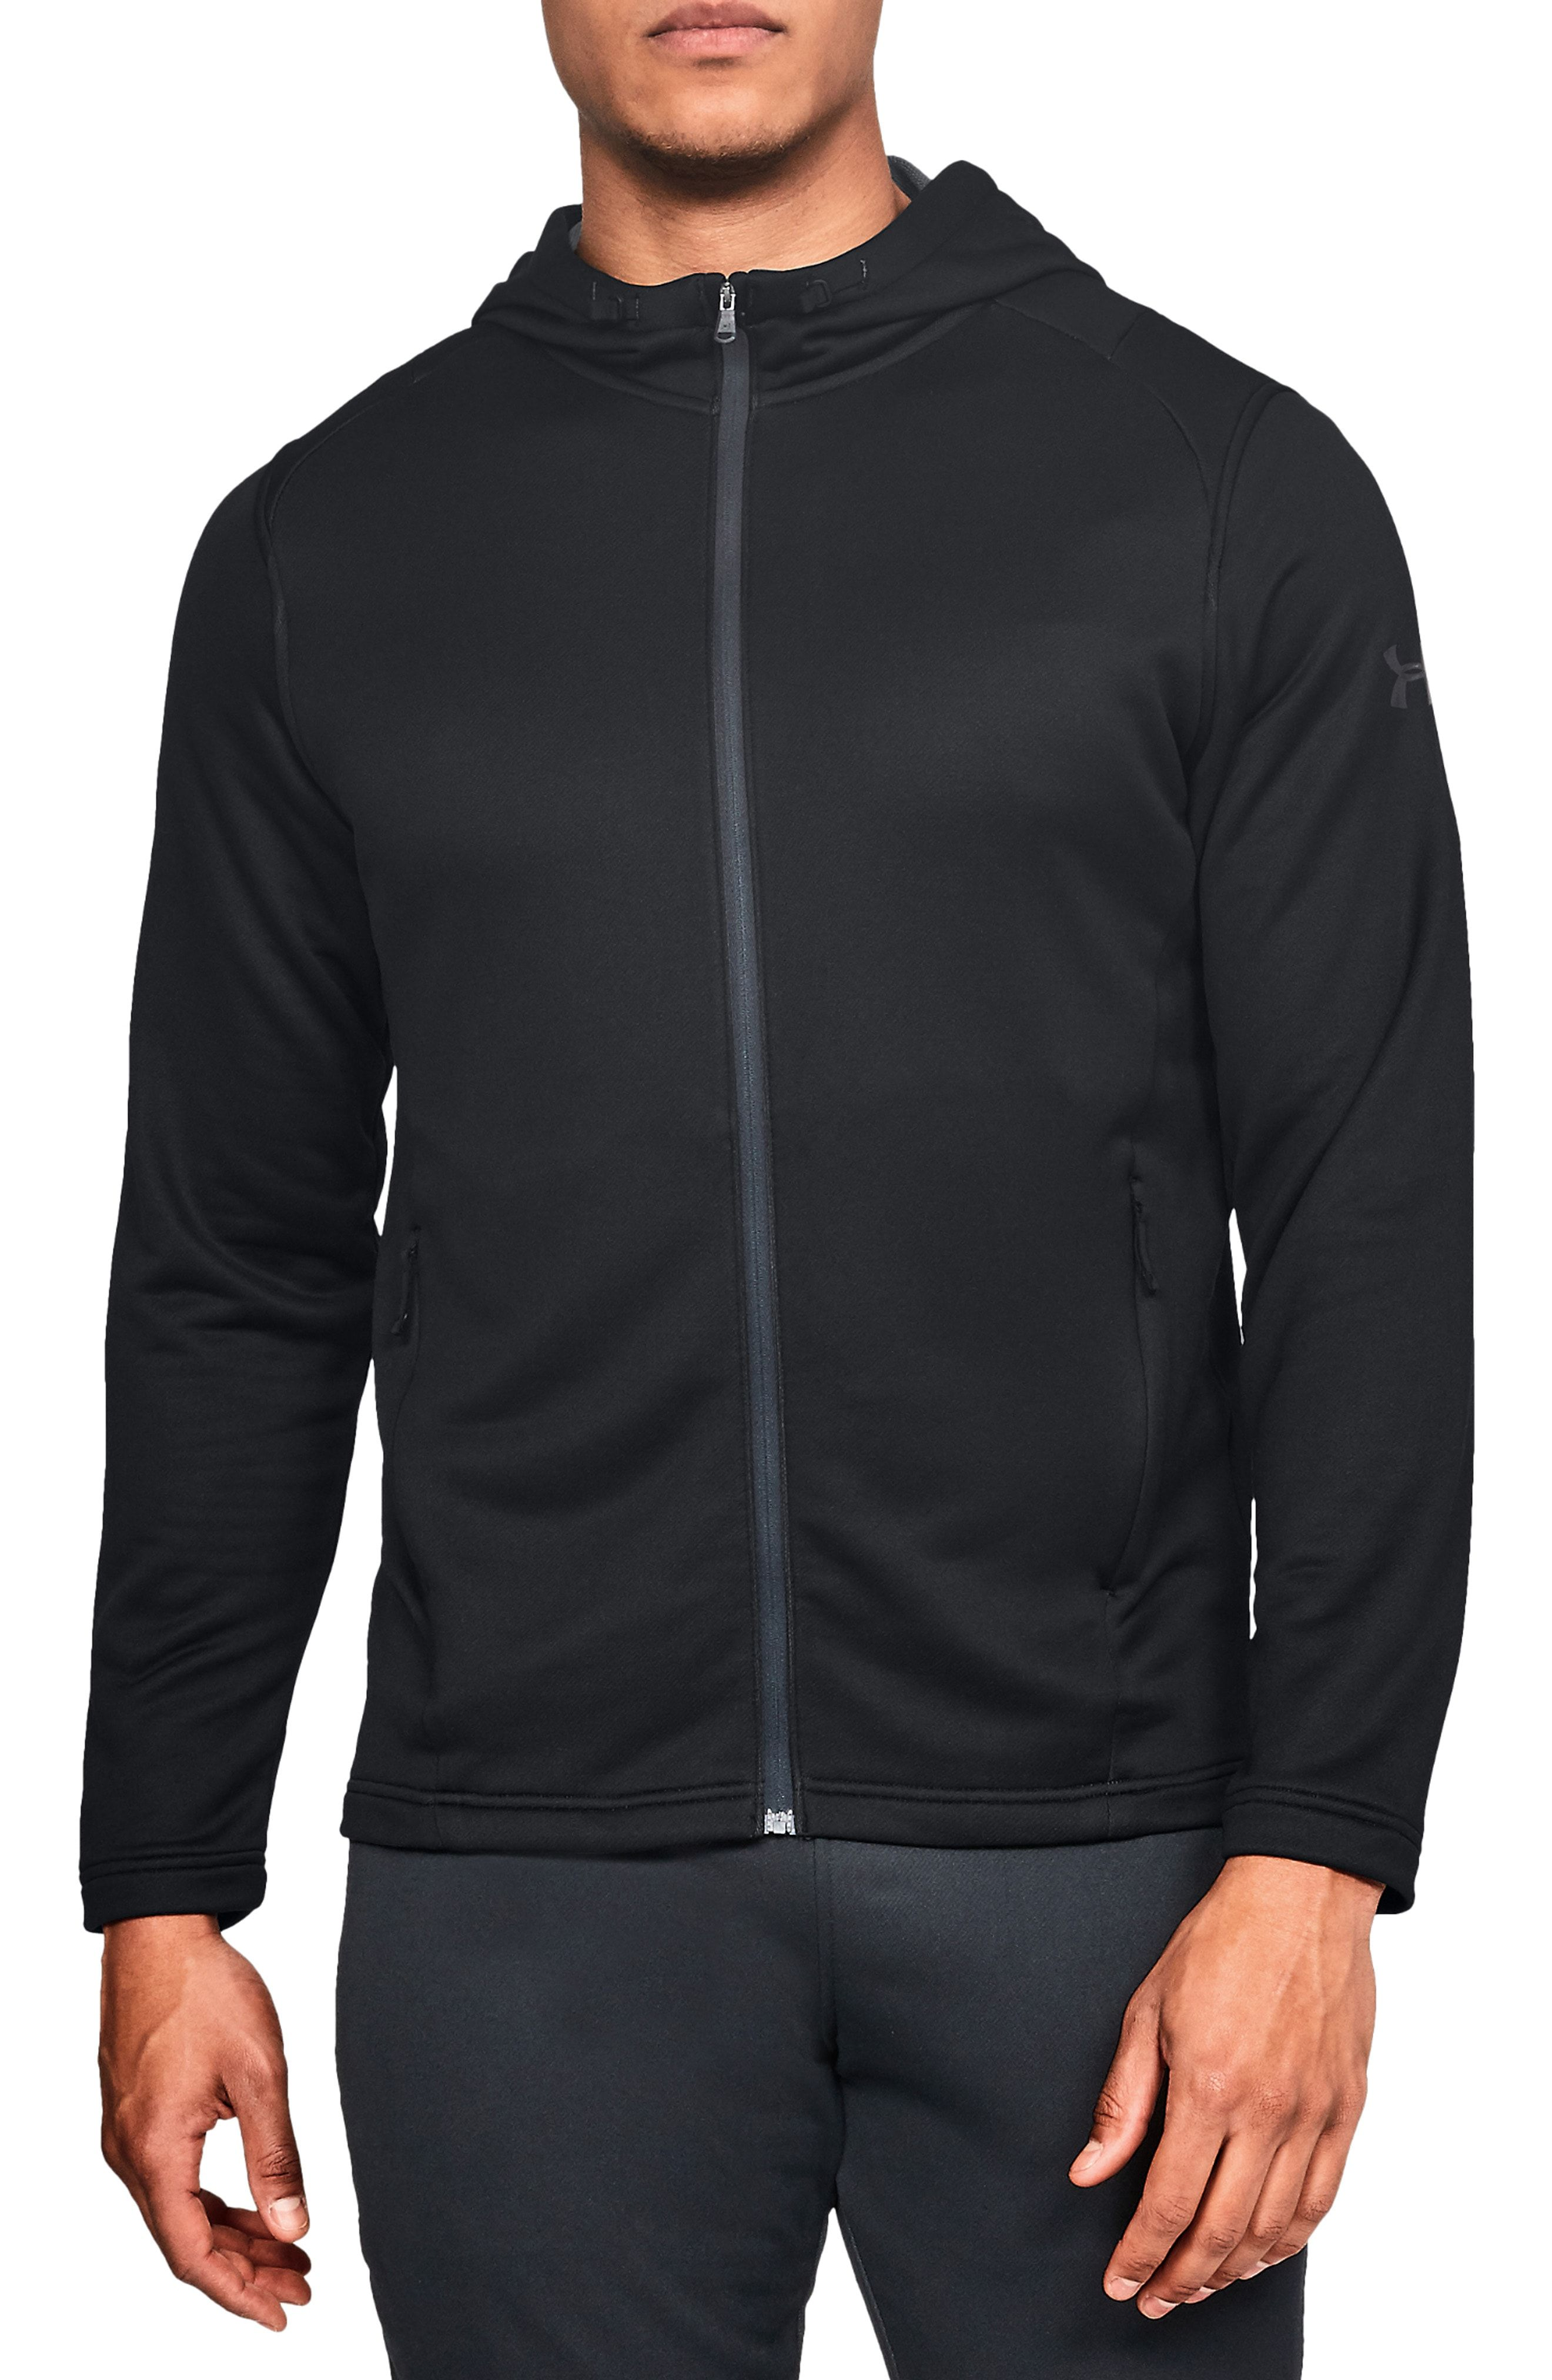 3f5baab8ad2fbb UNDER ARMOUR MK-1 TERRY ZIP HOODIE.  underarmour  cloth